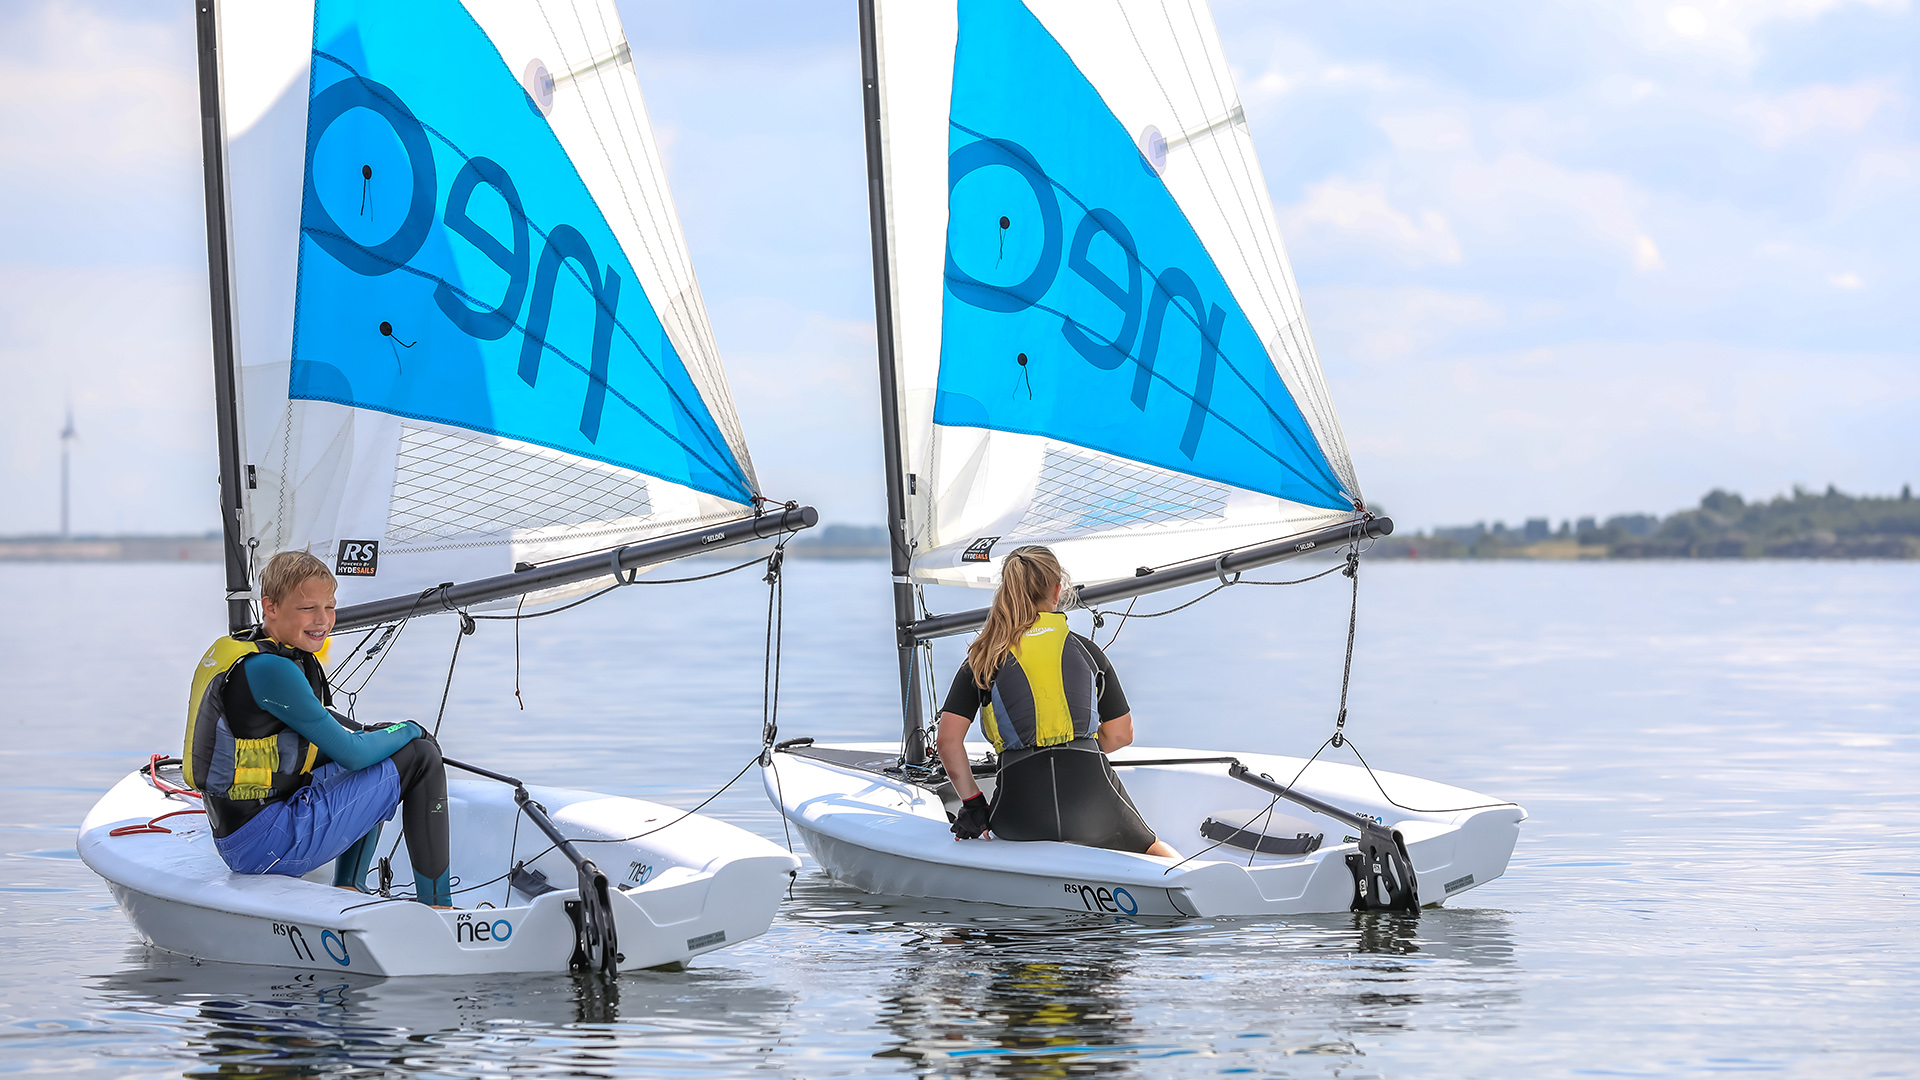 Two RS Neo Sailing boats with children learning to sail.